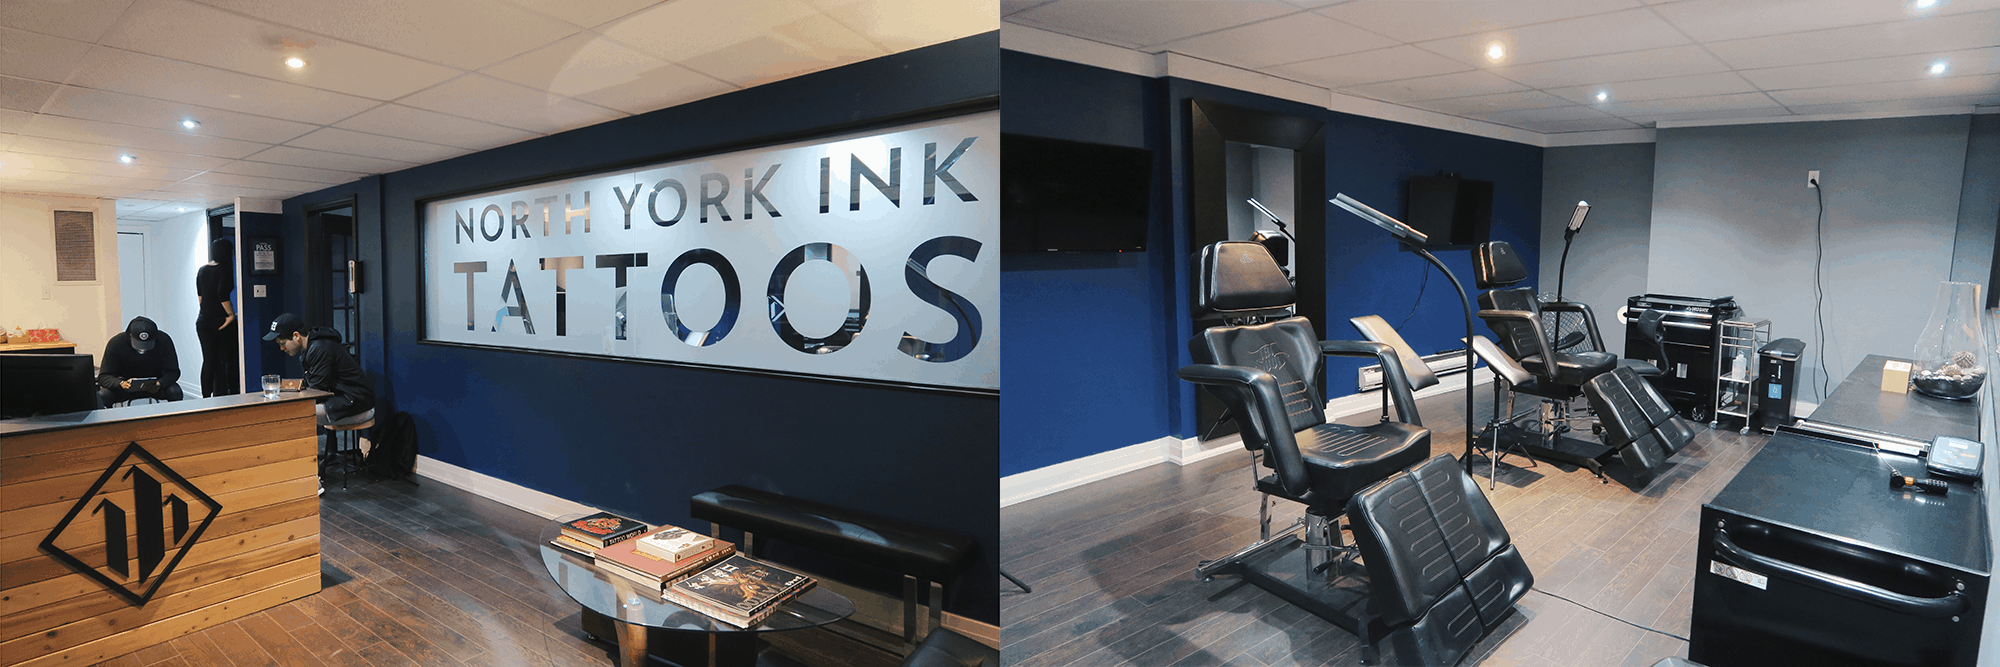 My tattoos explained | best Toronto tattoo shops | where to get tattoos done in Toronto, Ontario | Diary of a Toronto Girl, a Canadian lifestyle blog